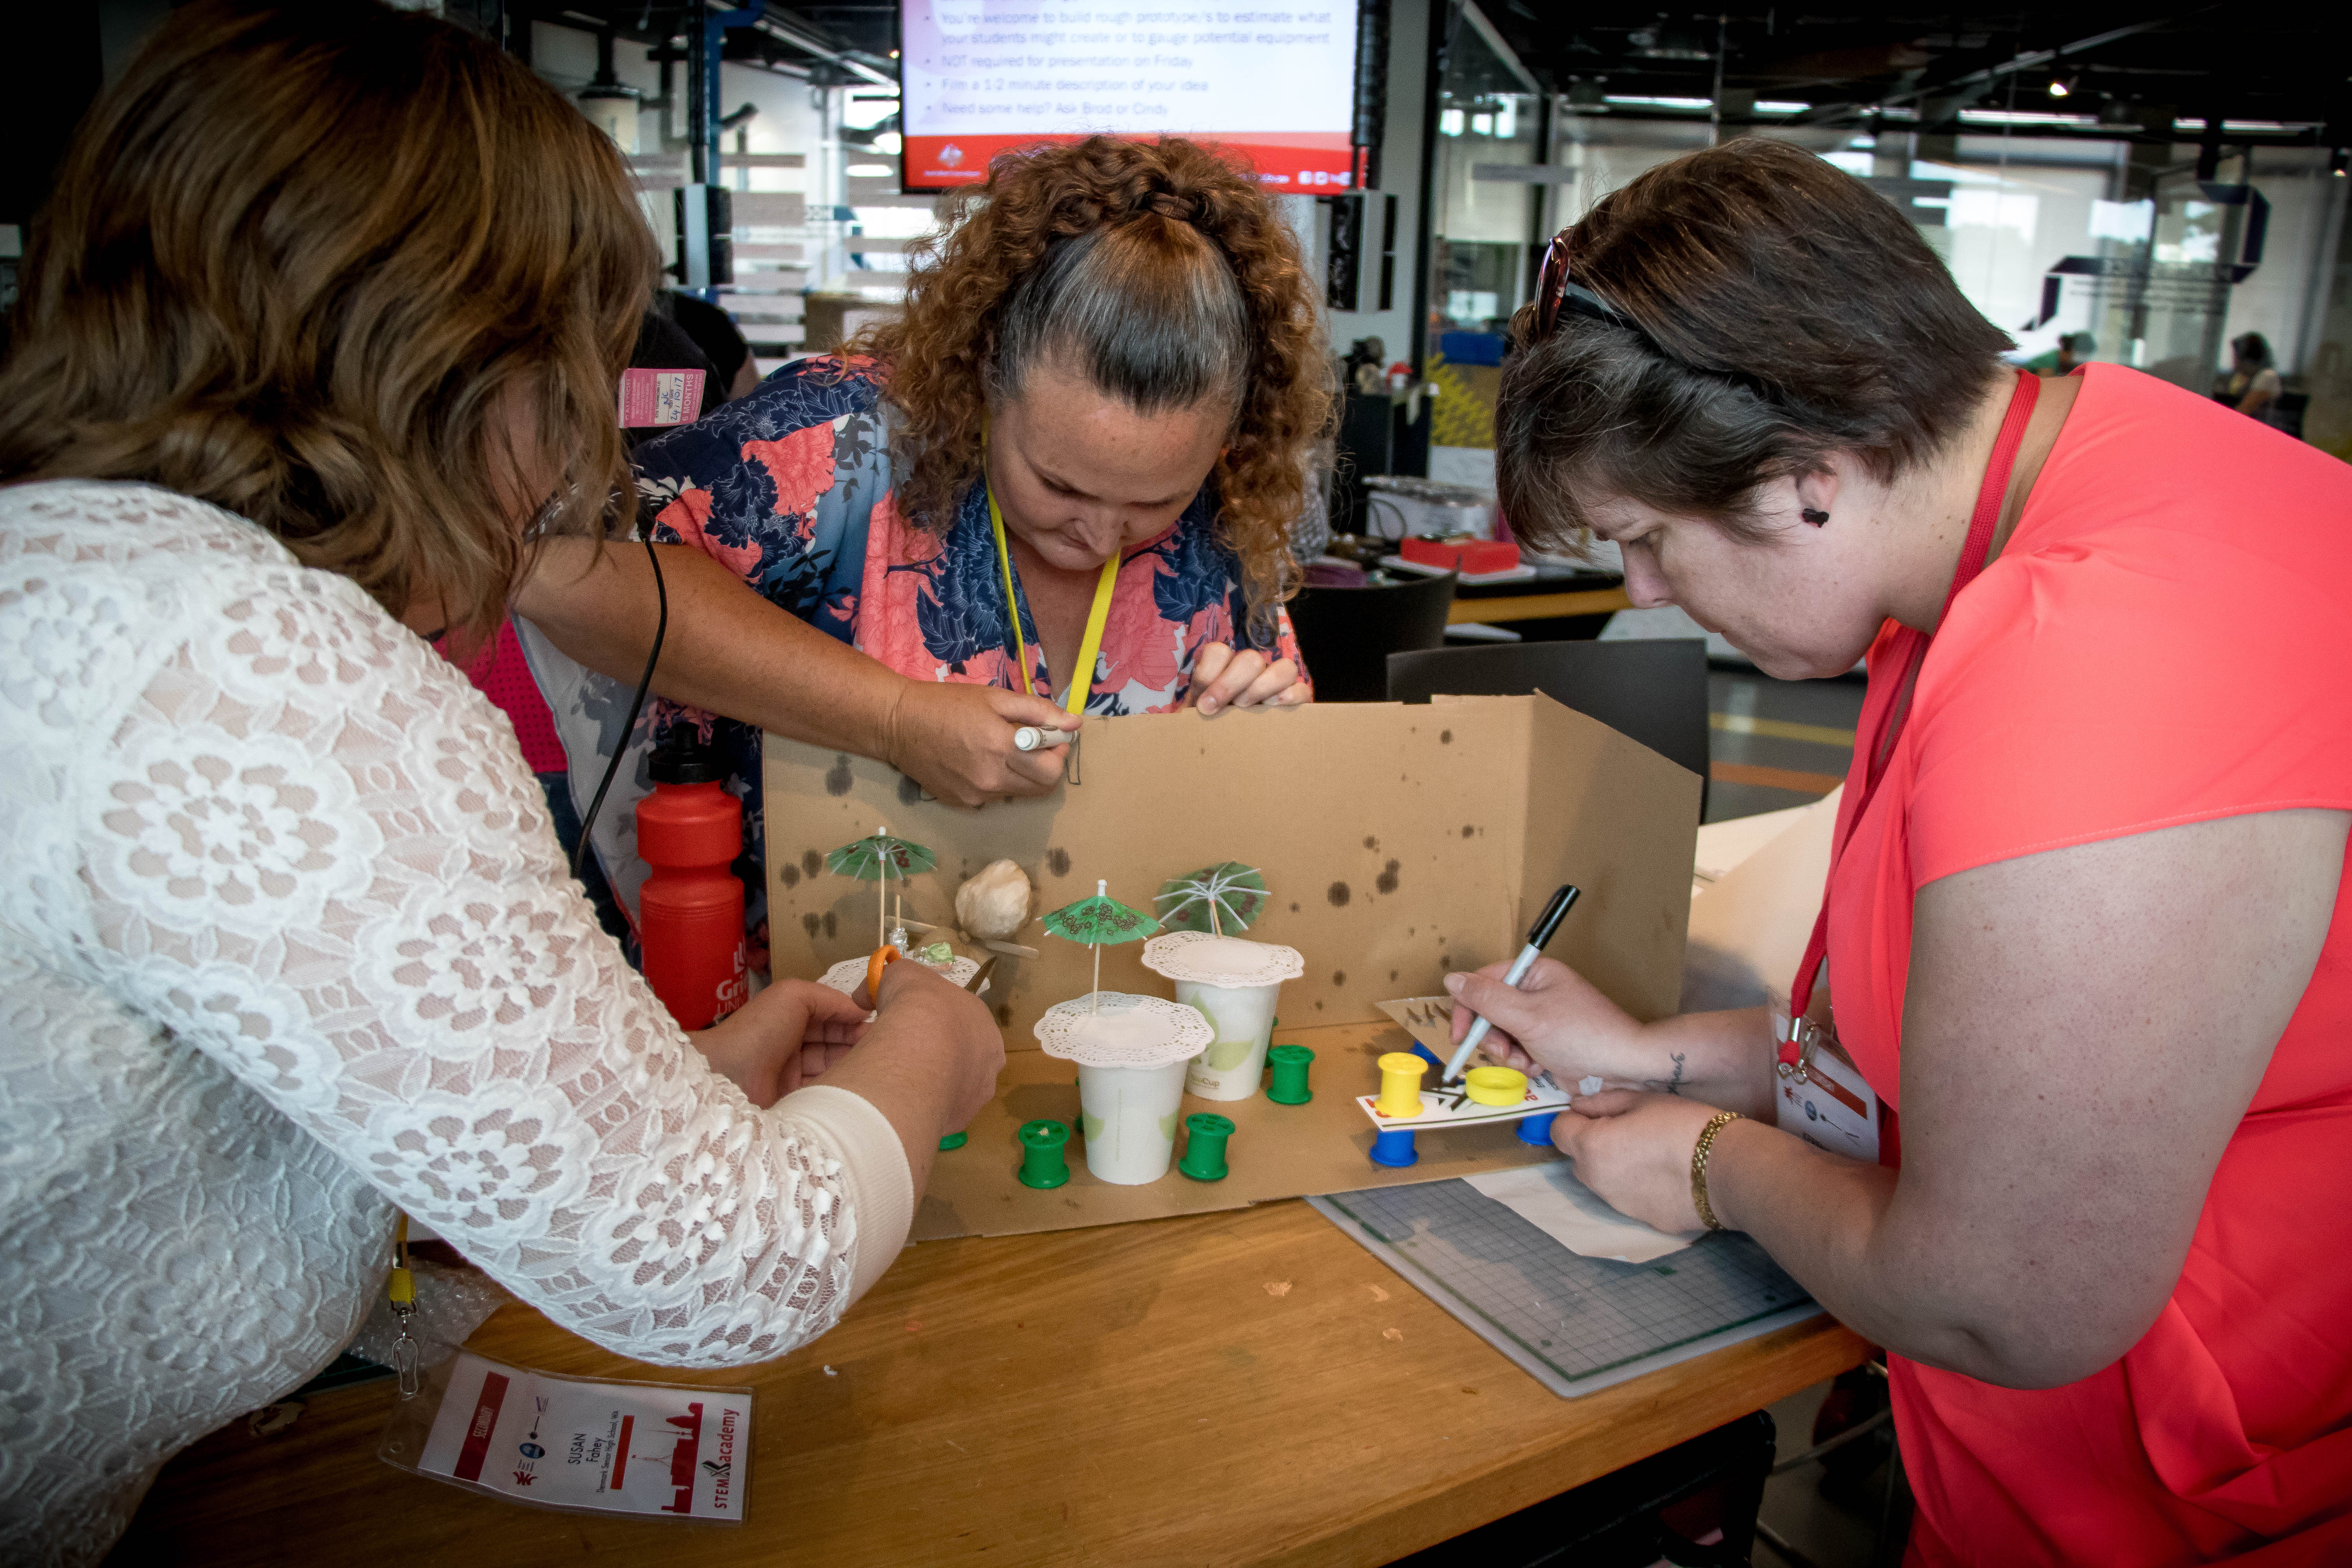 Susan Fahey from WA, Trudy Spargo from NSW and Kerensa Greenfield from SA collaborate on an activity at Questacon's Makerspace in Deakin.